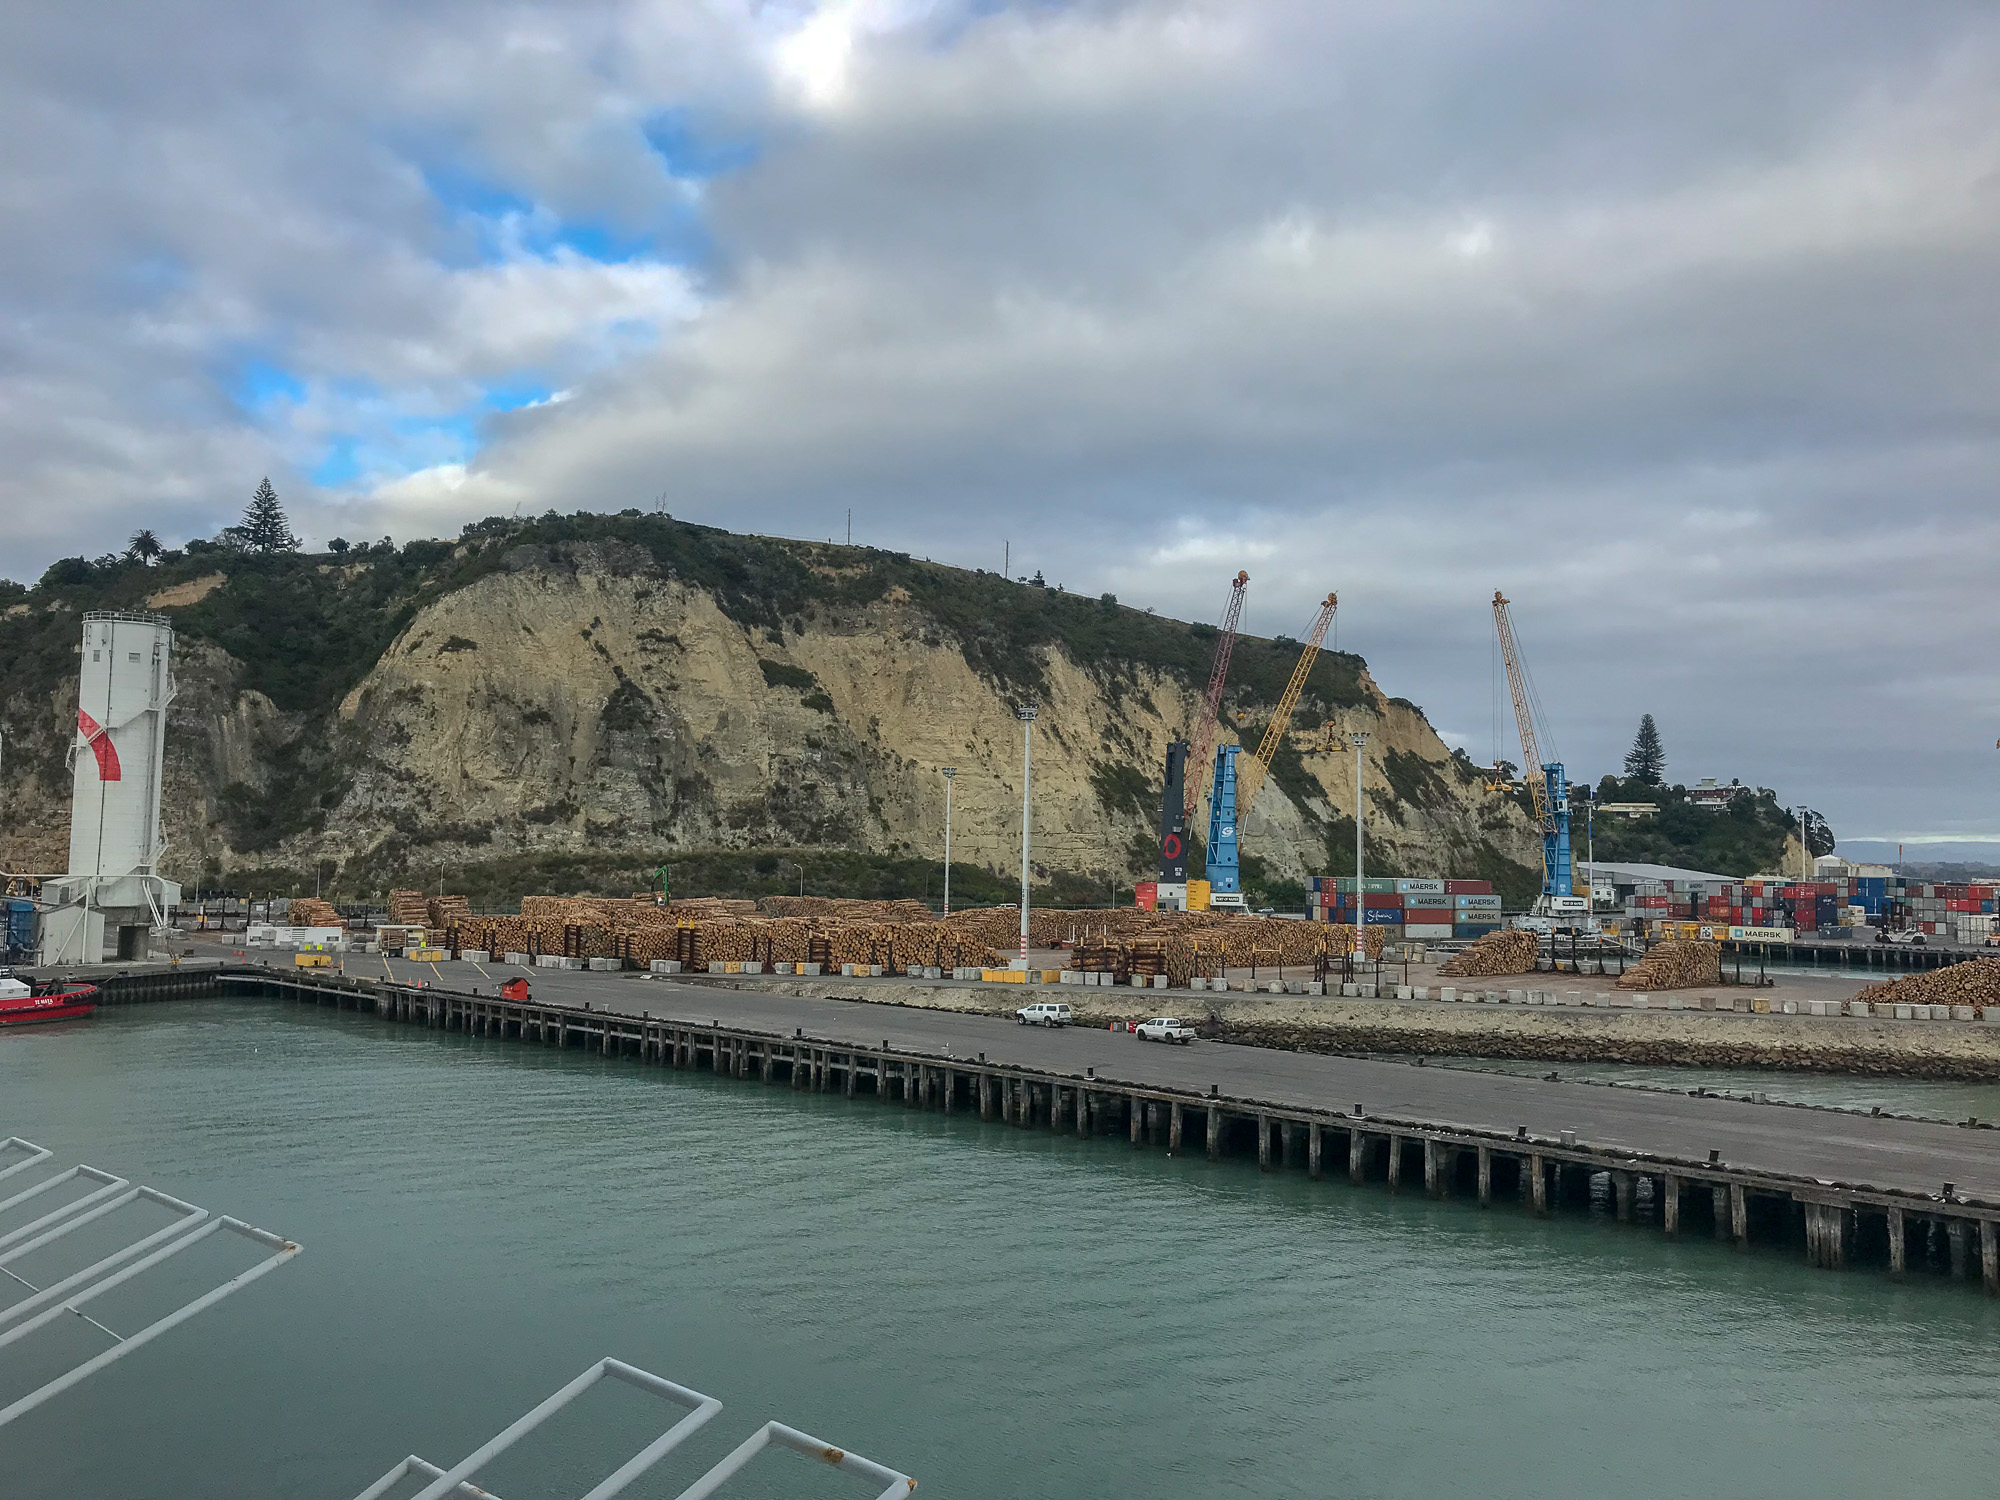 Napier shipping yard with lots of California pine